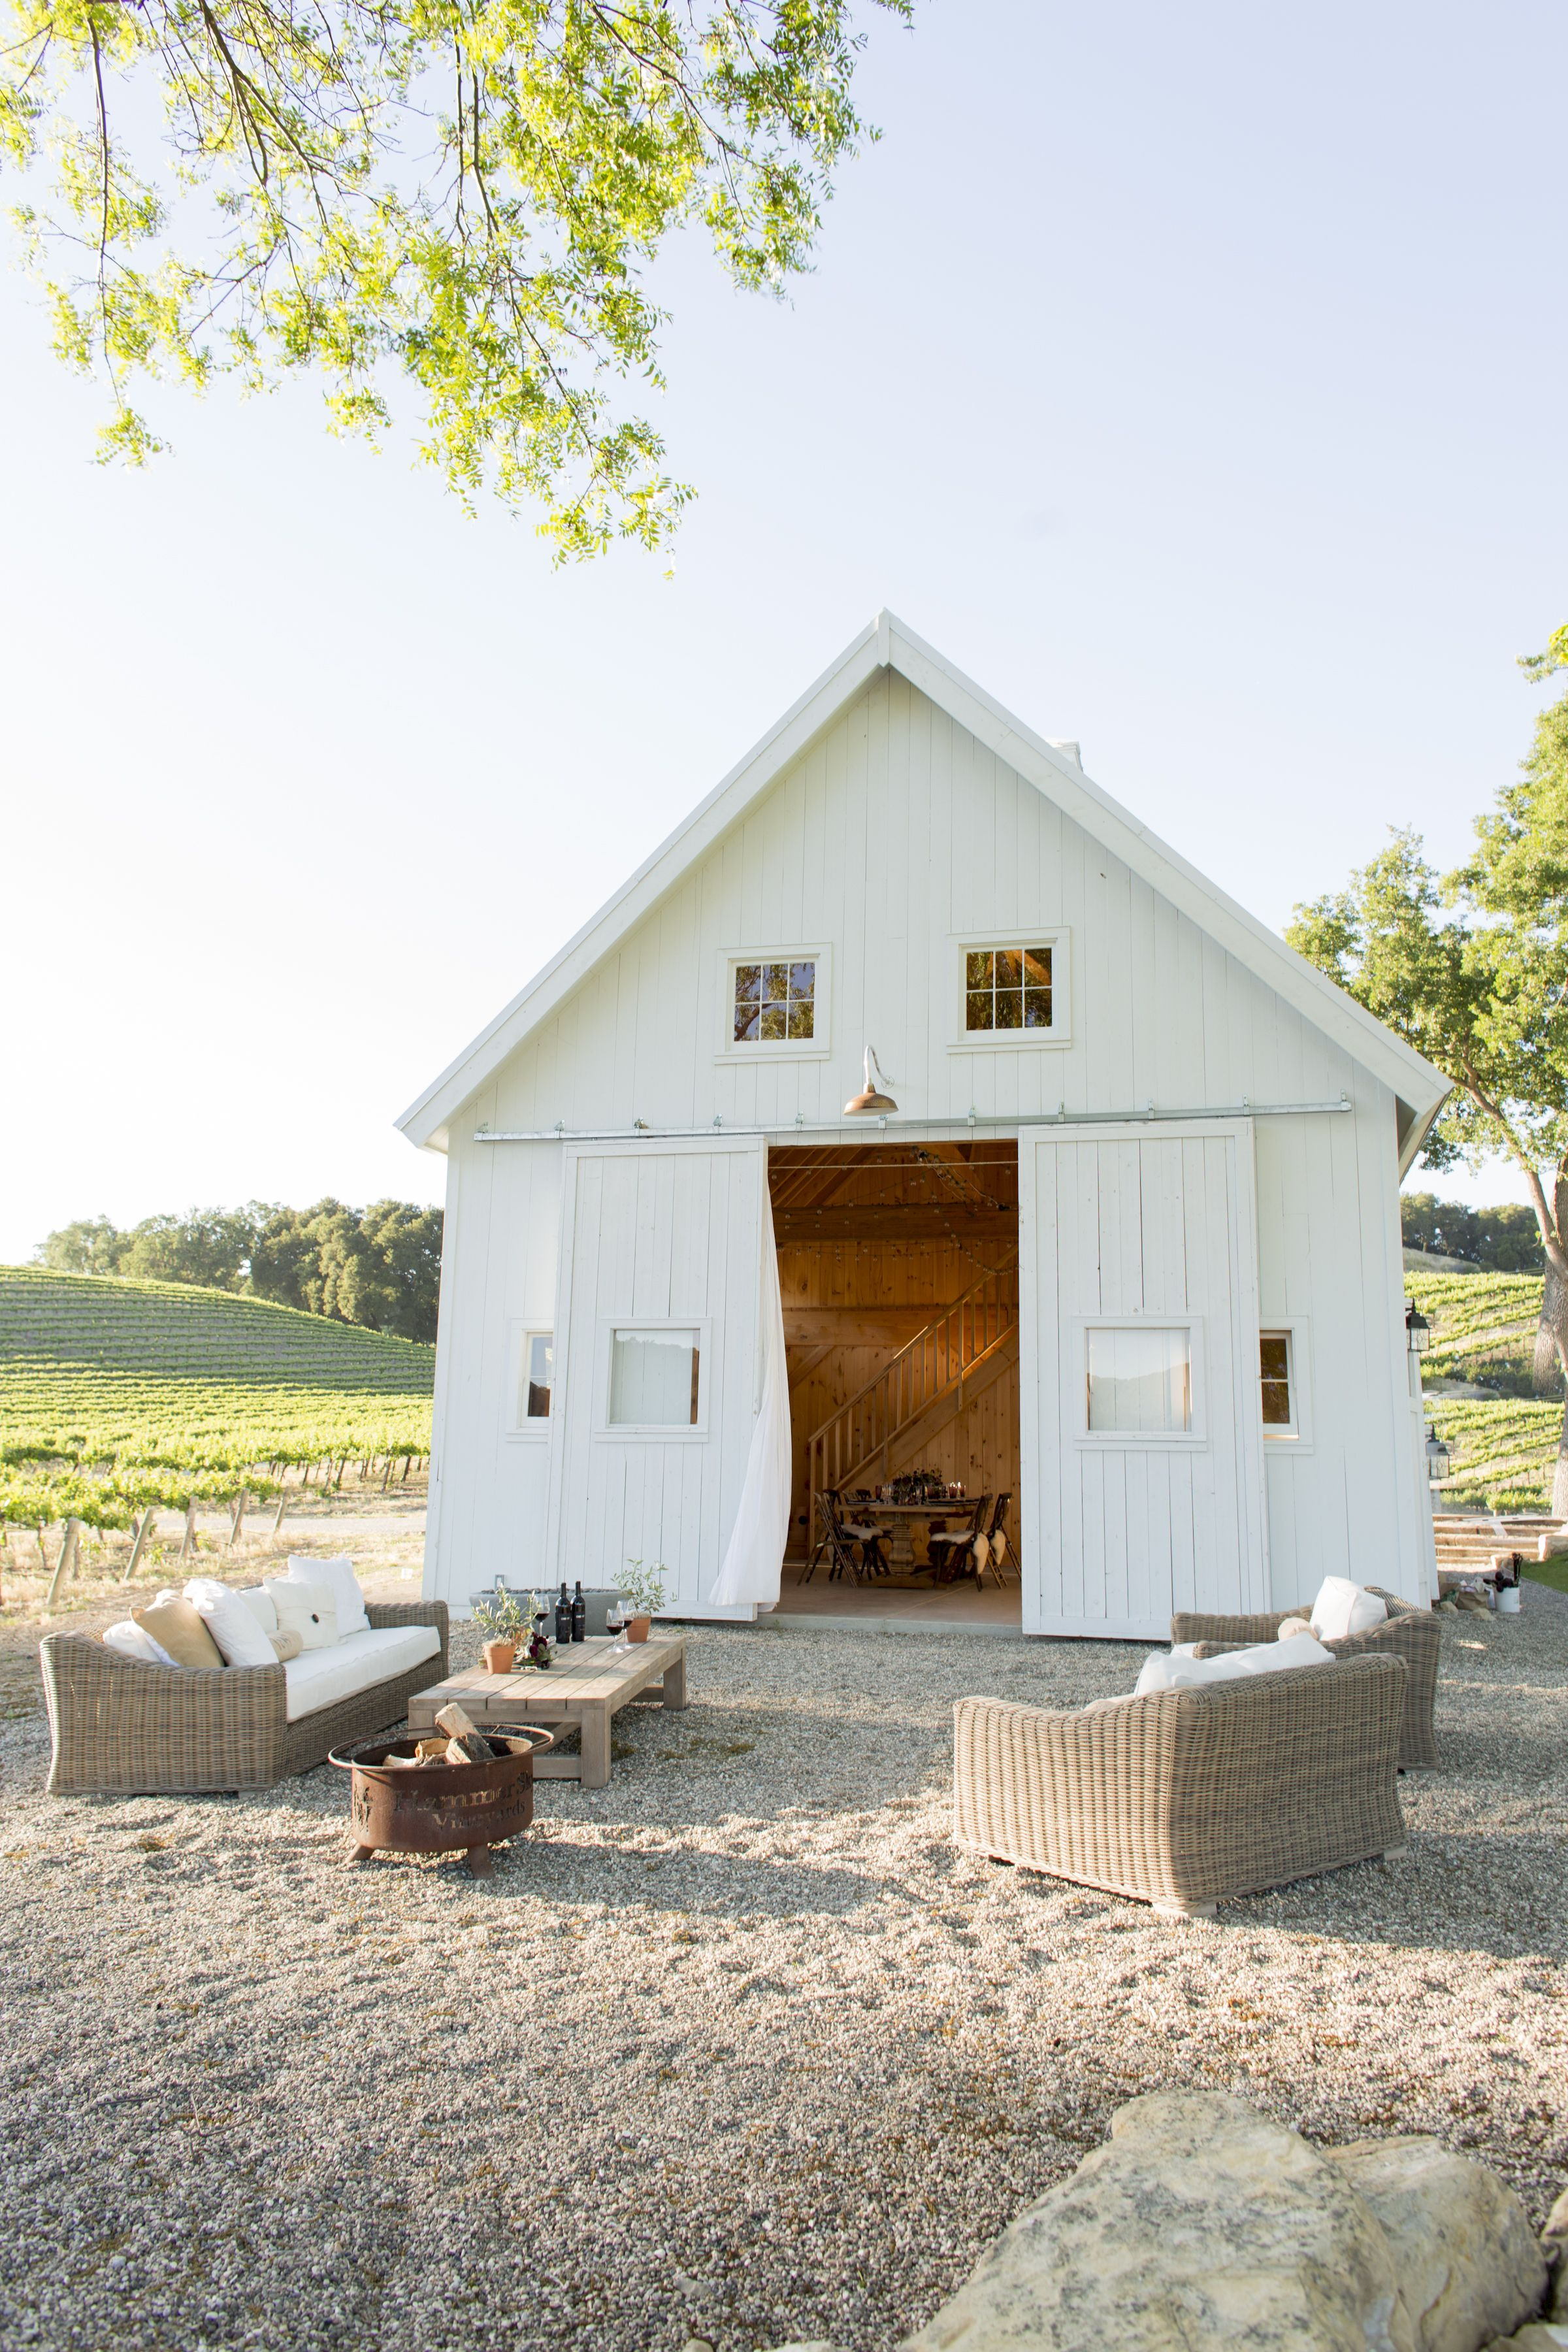 Paso Robles Wine Country Shoot | Barn, Simple house and White barn